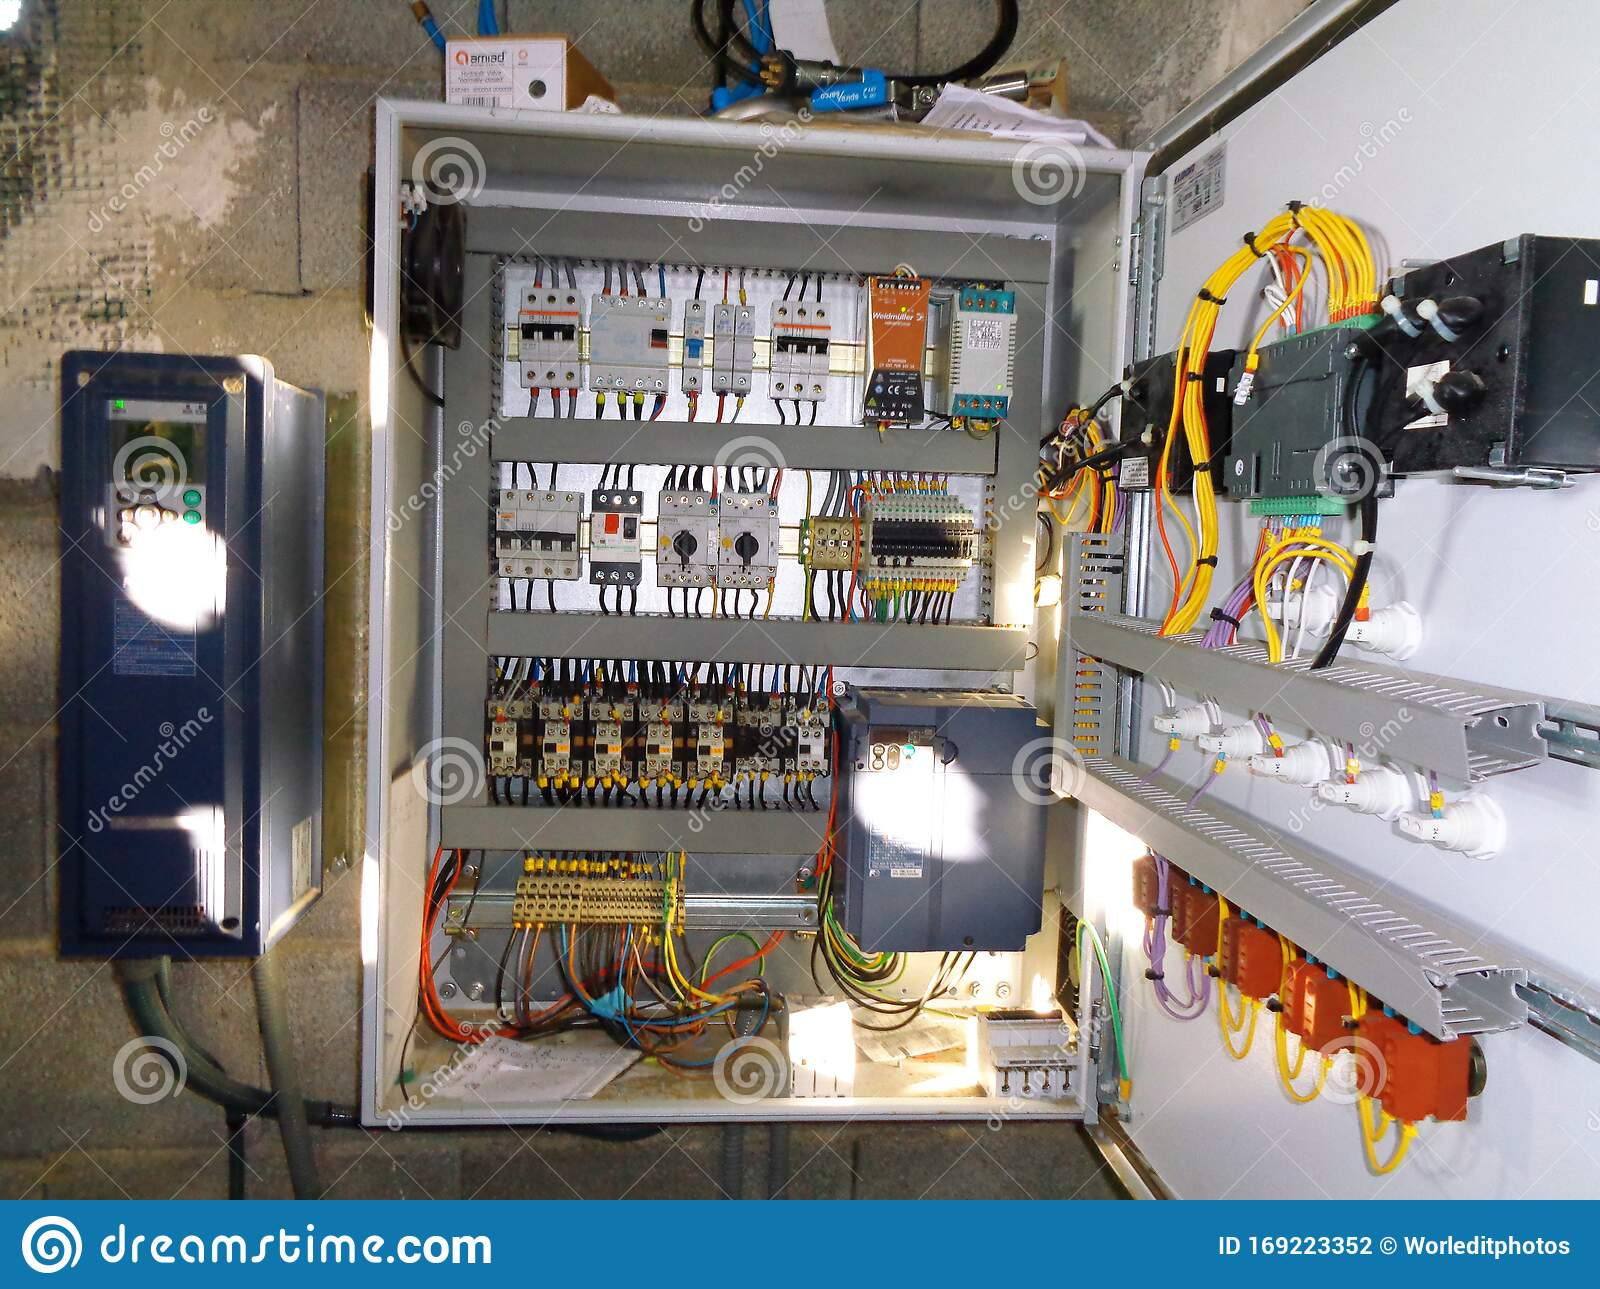 Electricity Distribution Box With Wires And Circuit Breakers Fuse Box Stock Photo Image Of Electric Circuit 169223352